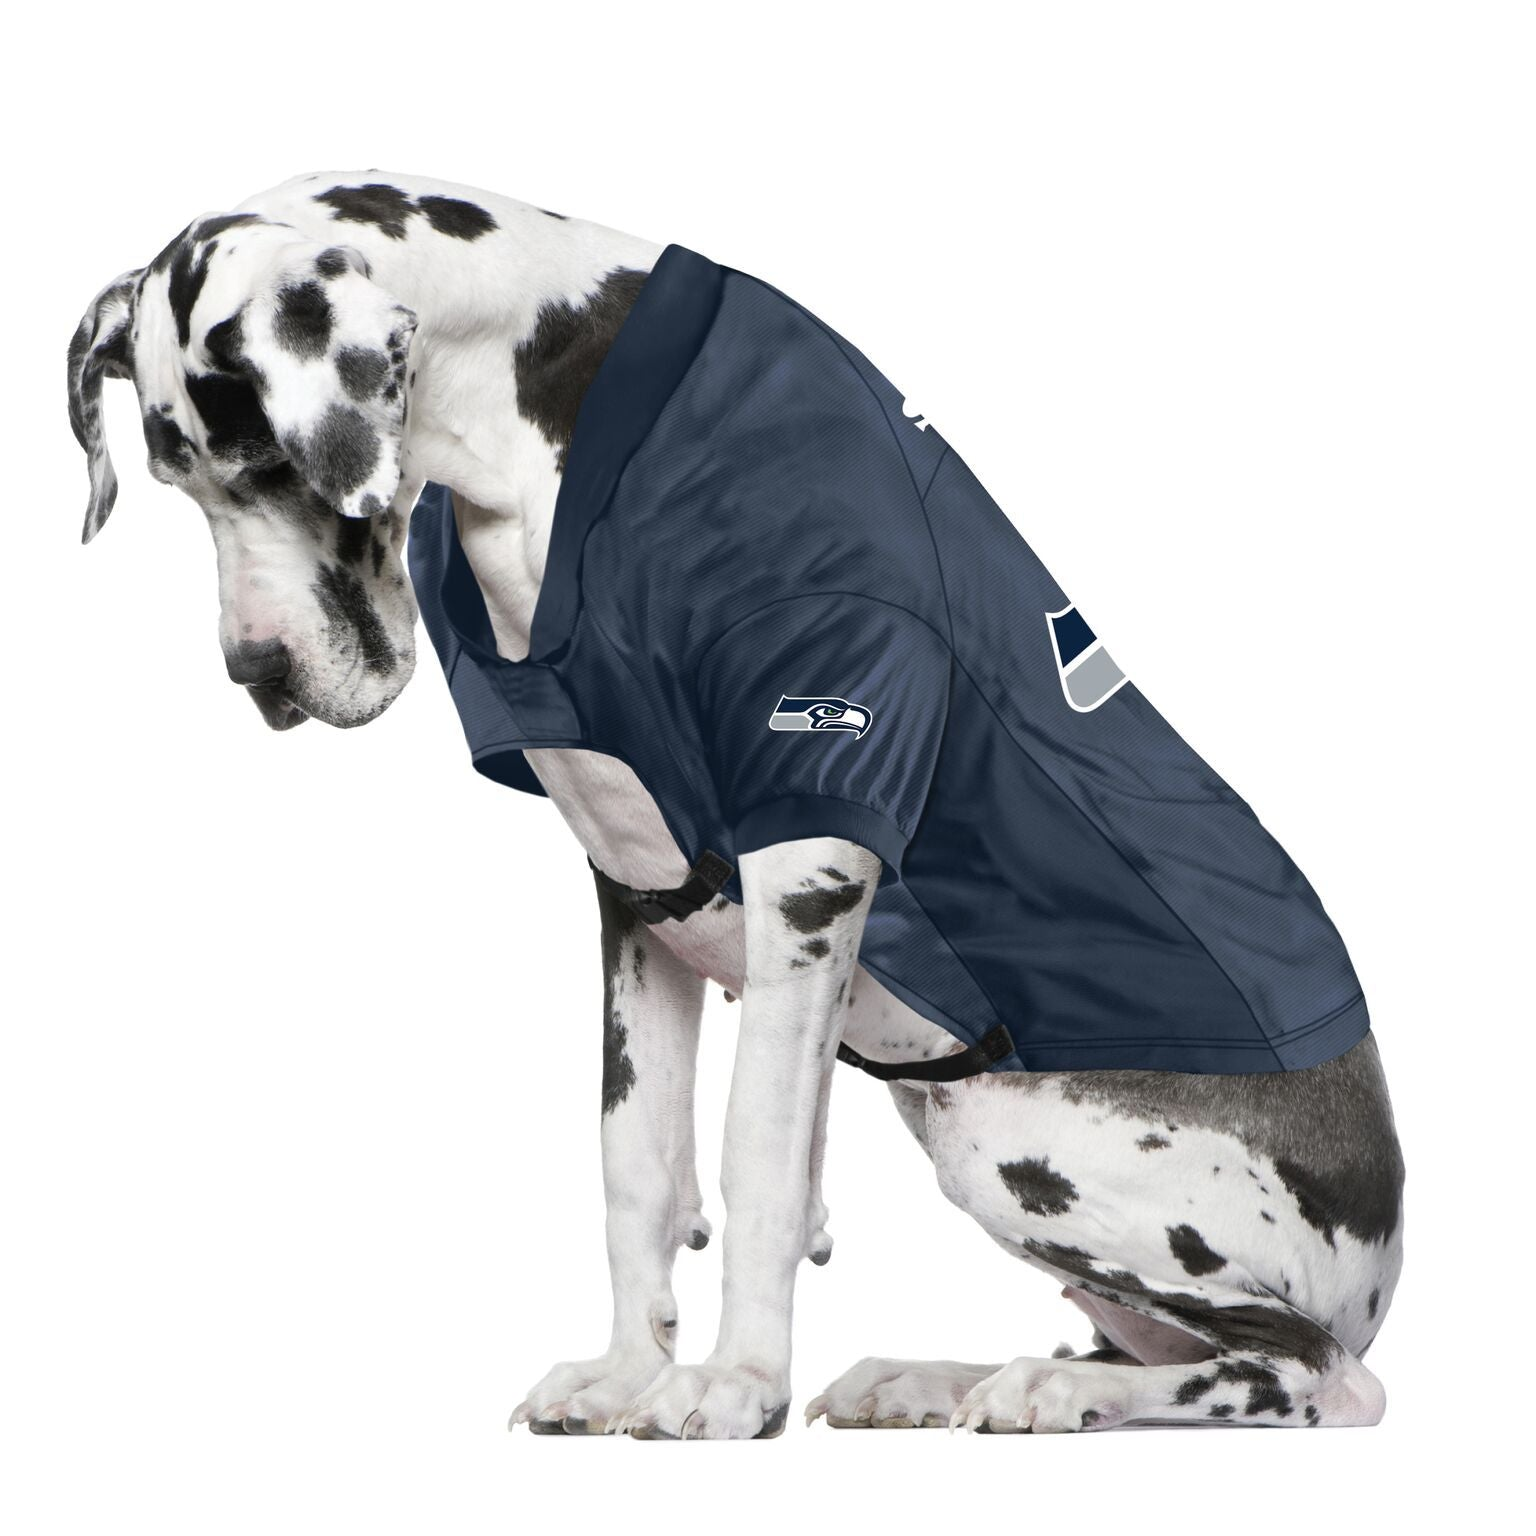 Seahawks Fan Jersey For Your Dog